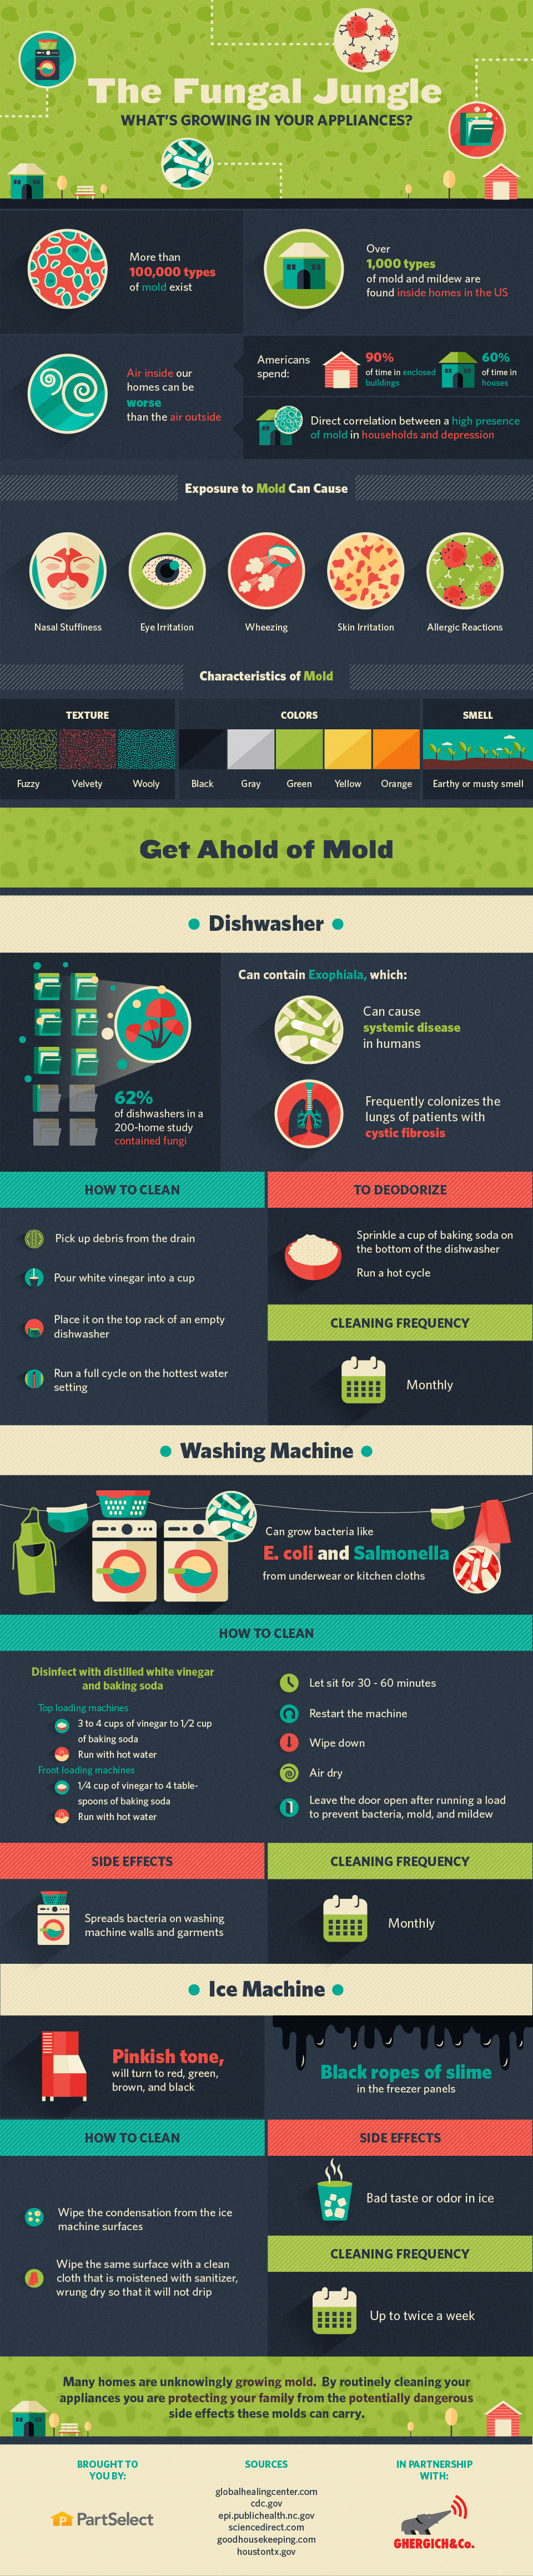 how to clean ice maker machine